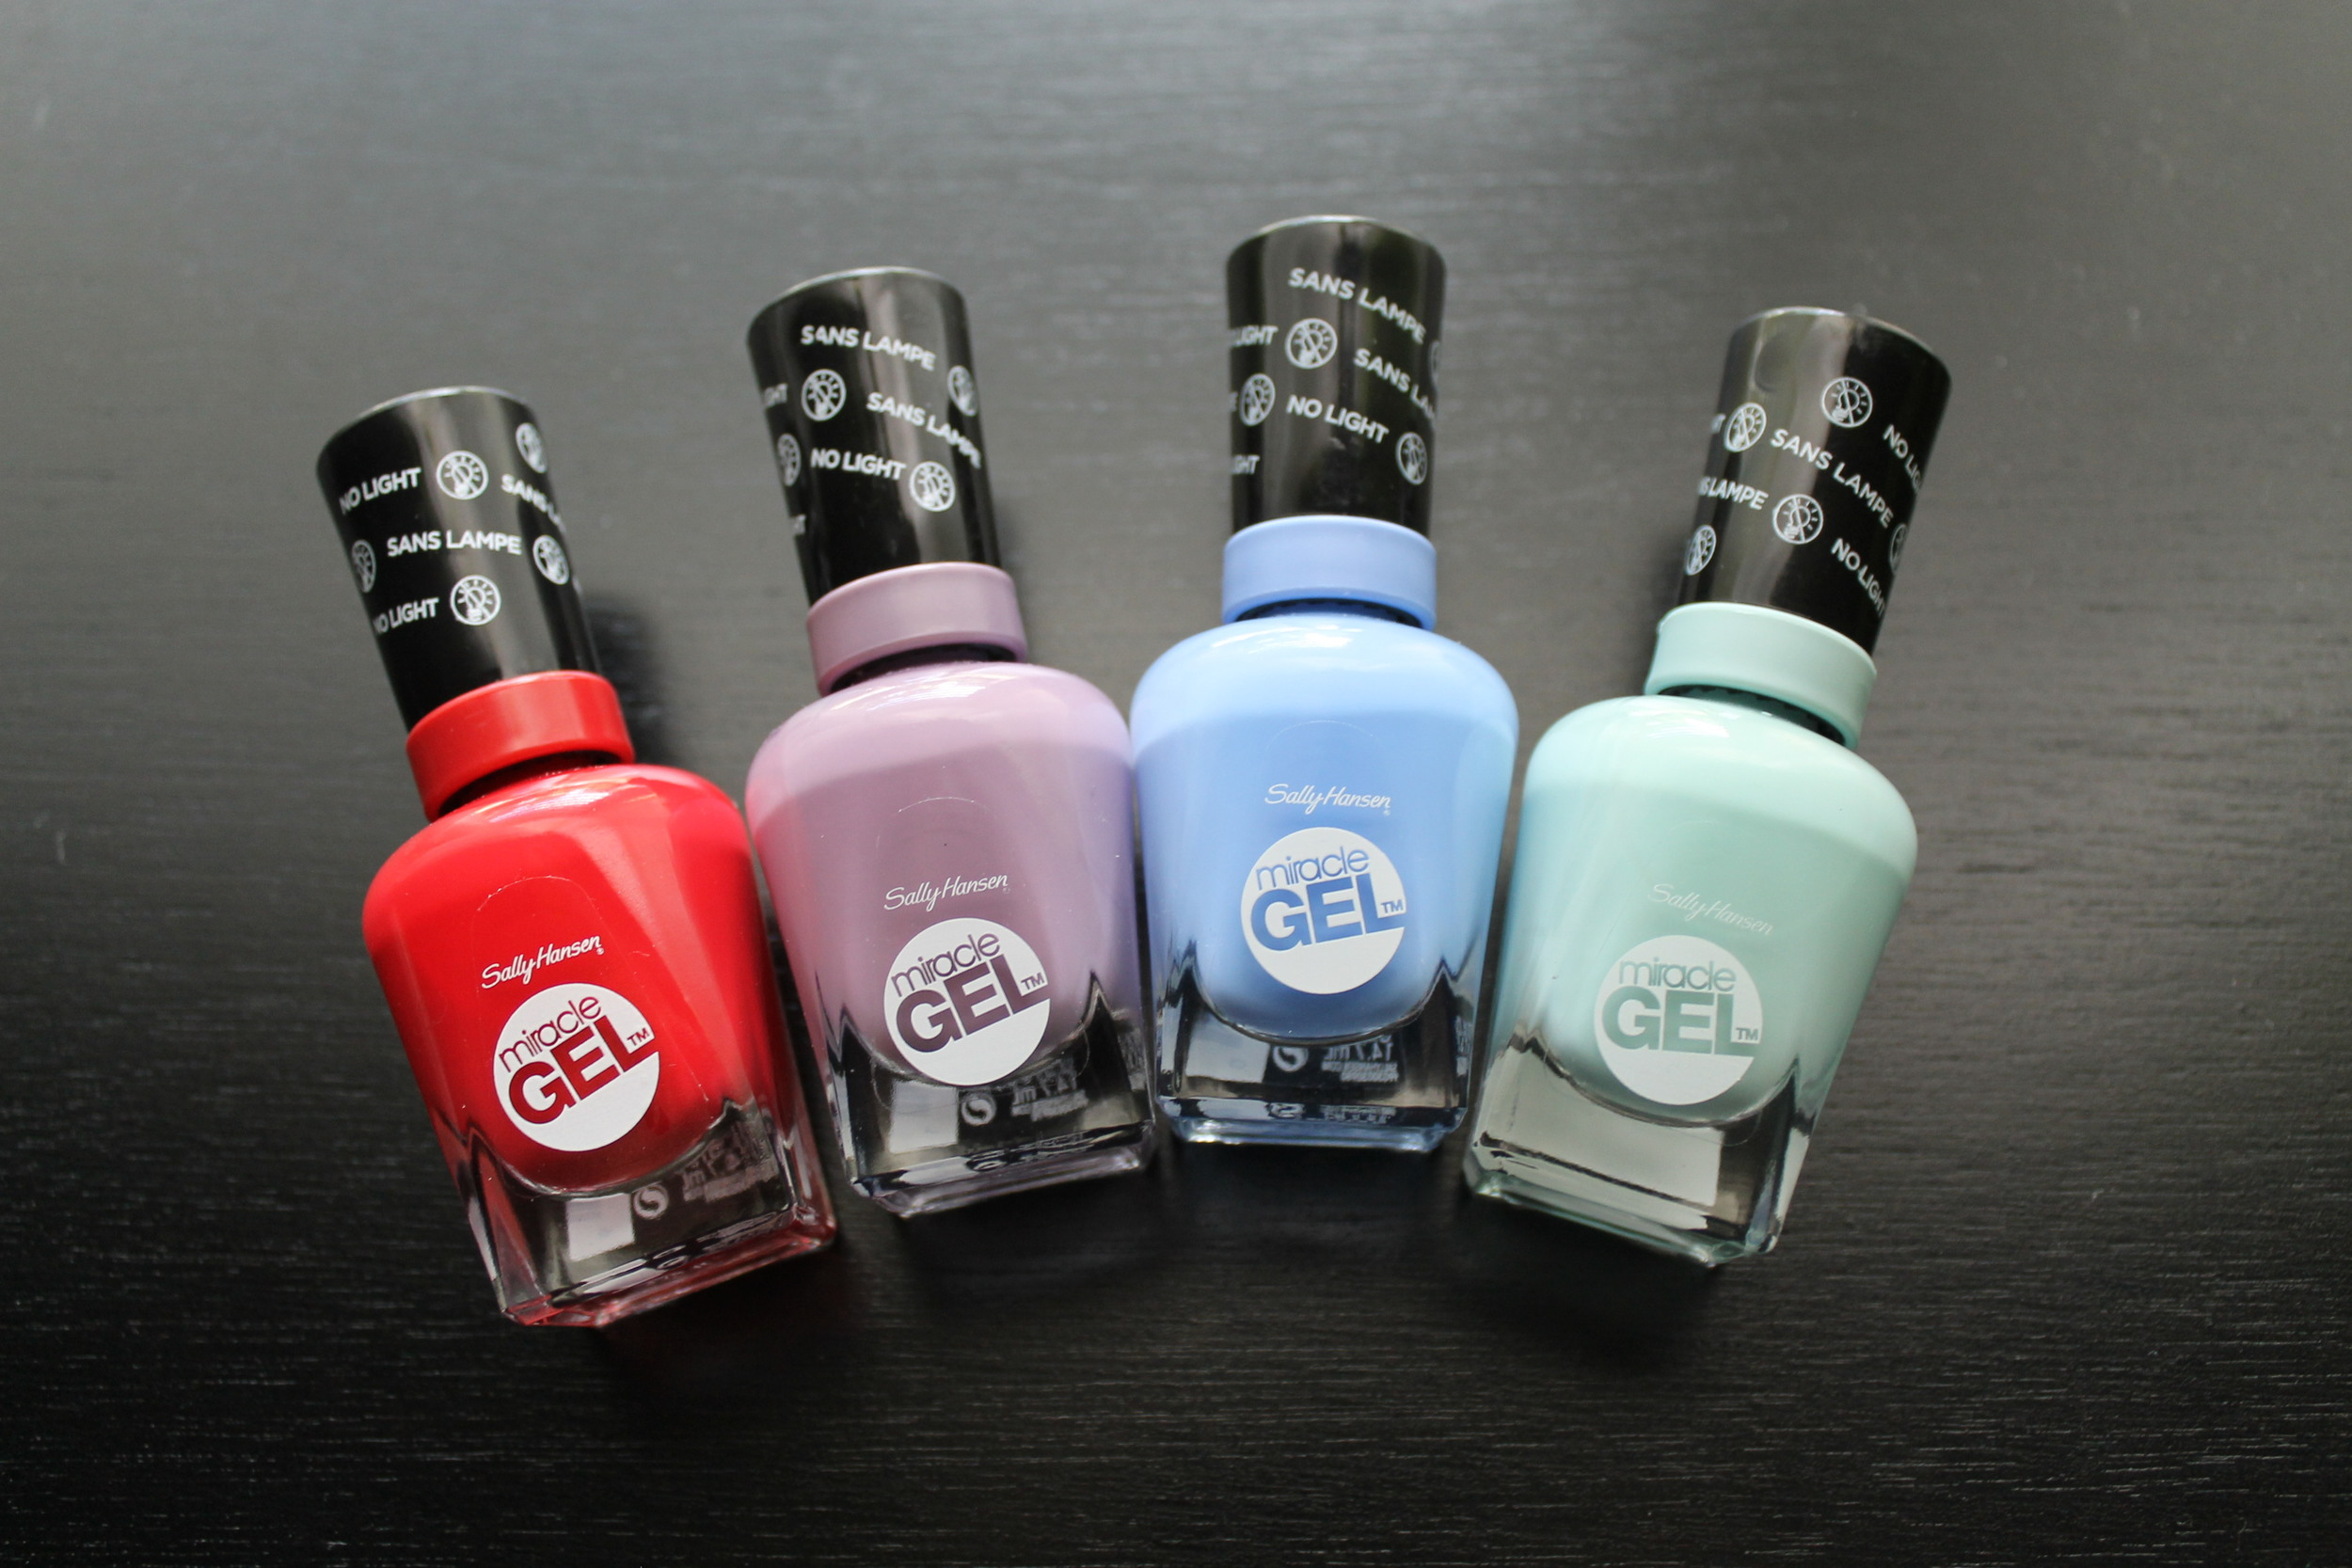 470 - Red Eye, 270 - Street Flair, 370 - Sugar Fix, 240 - B Girl. Not pictured: 100 Top Coat